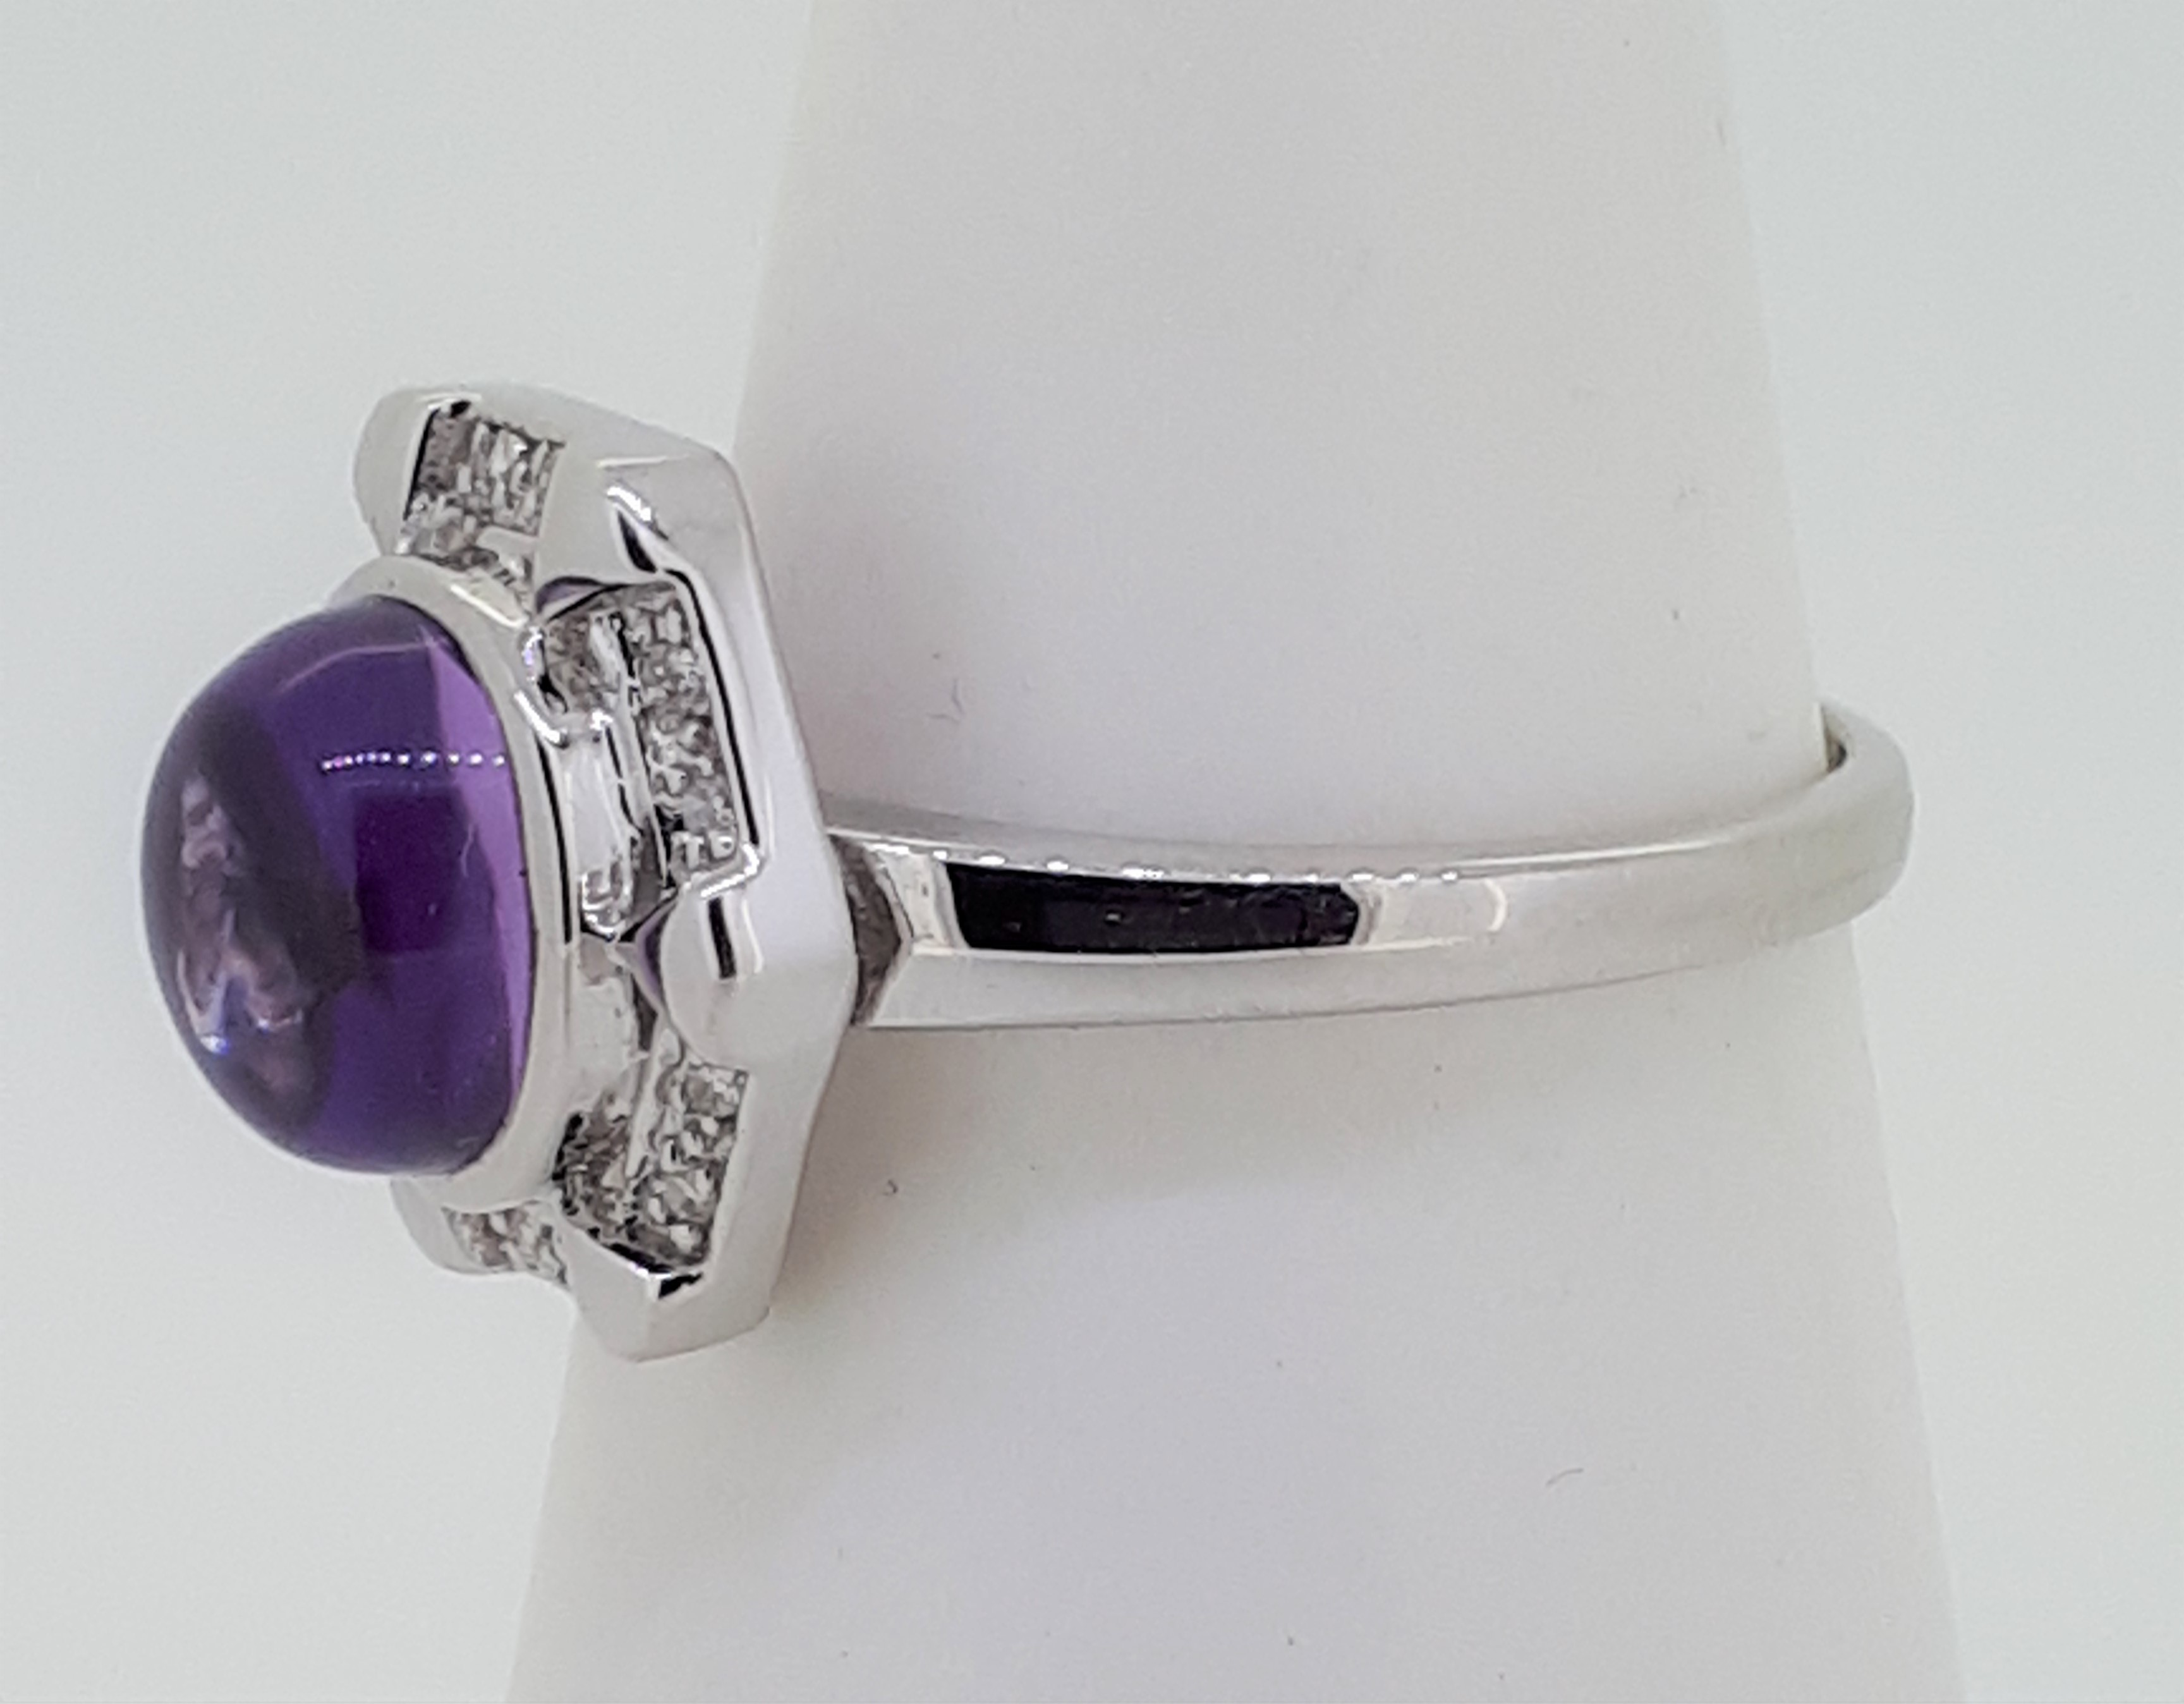 9ct White Gold Cabochon Amethyst & Diamond Ring - Image 3 of 4